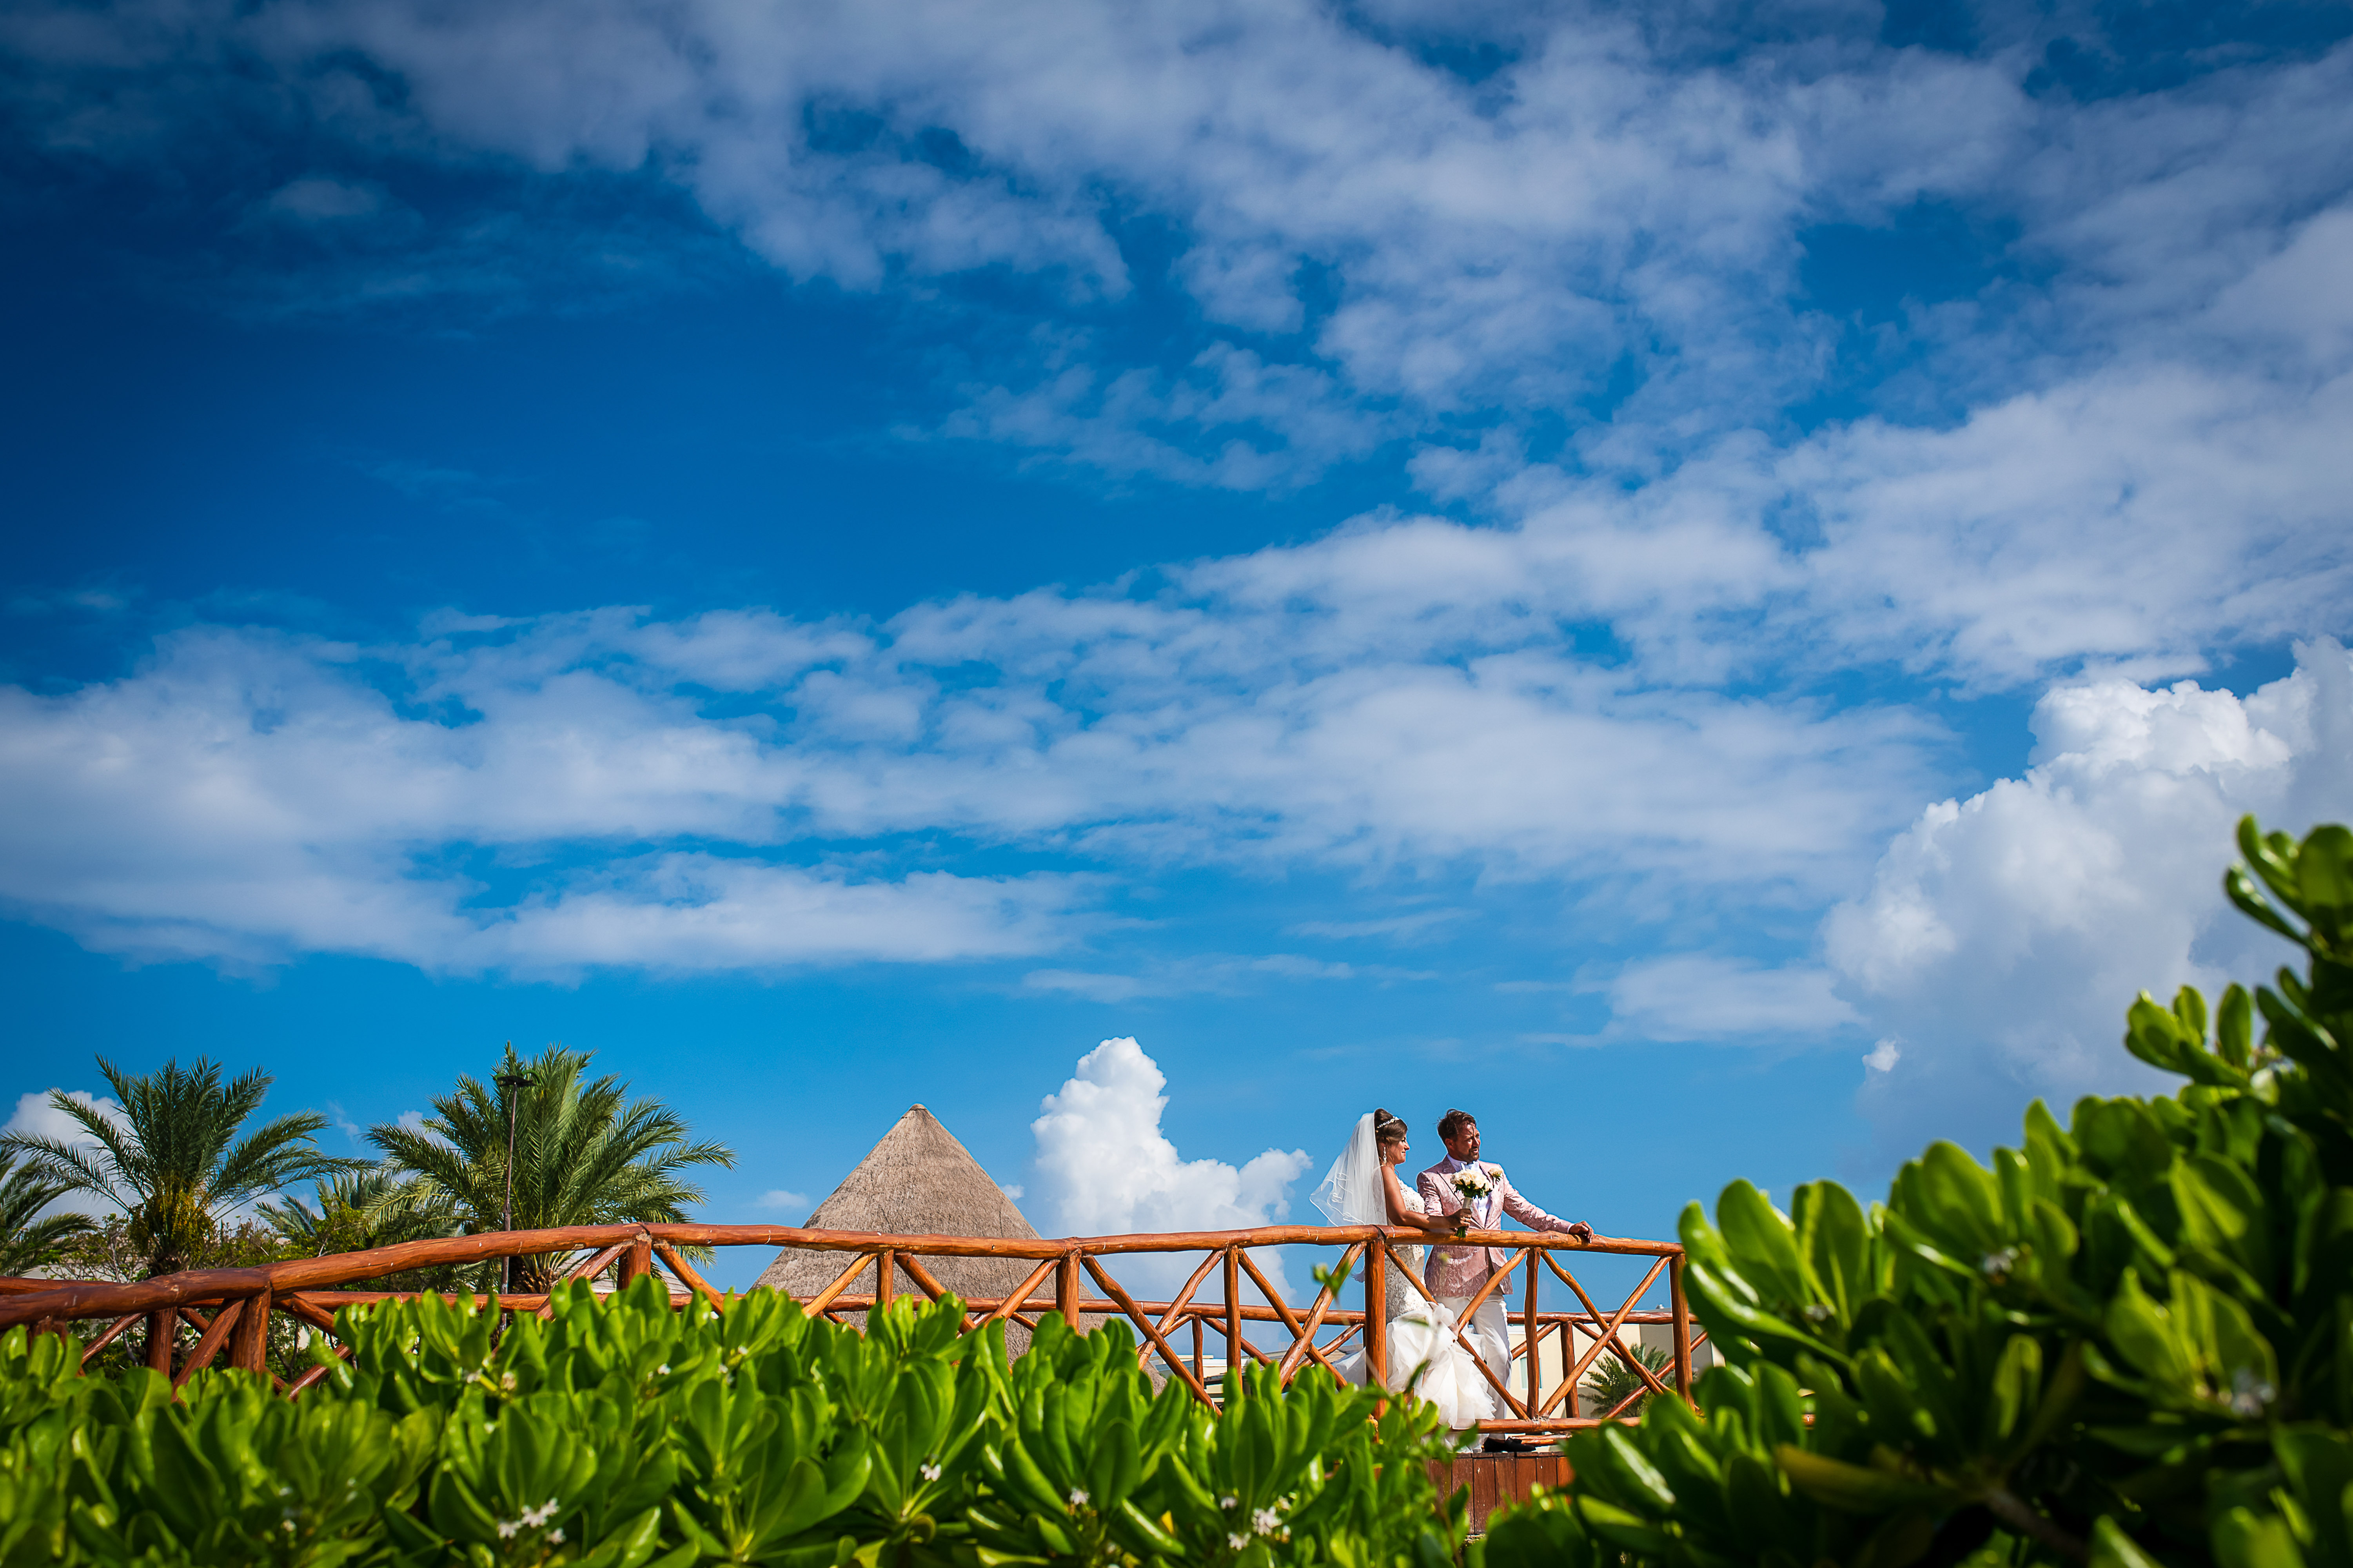 bride and groom posing at the bridge with green plants and blue sky in the grand at the moon palace resort